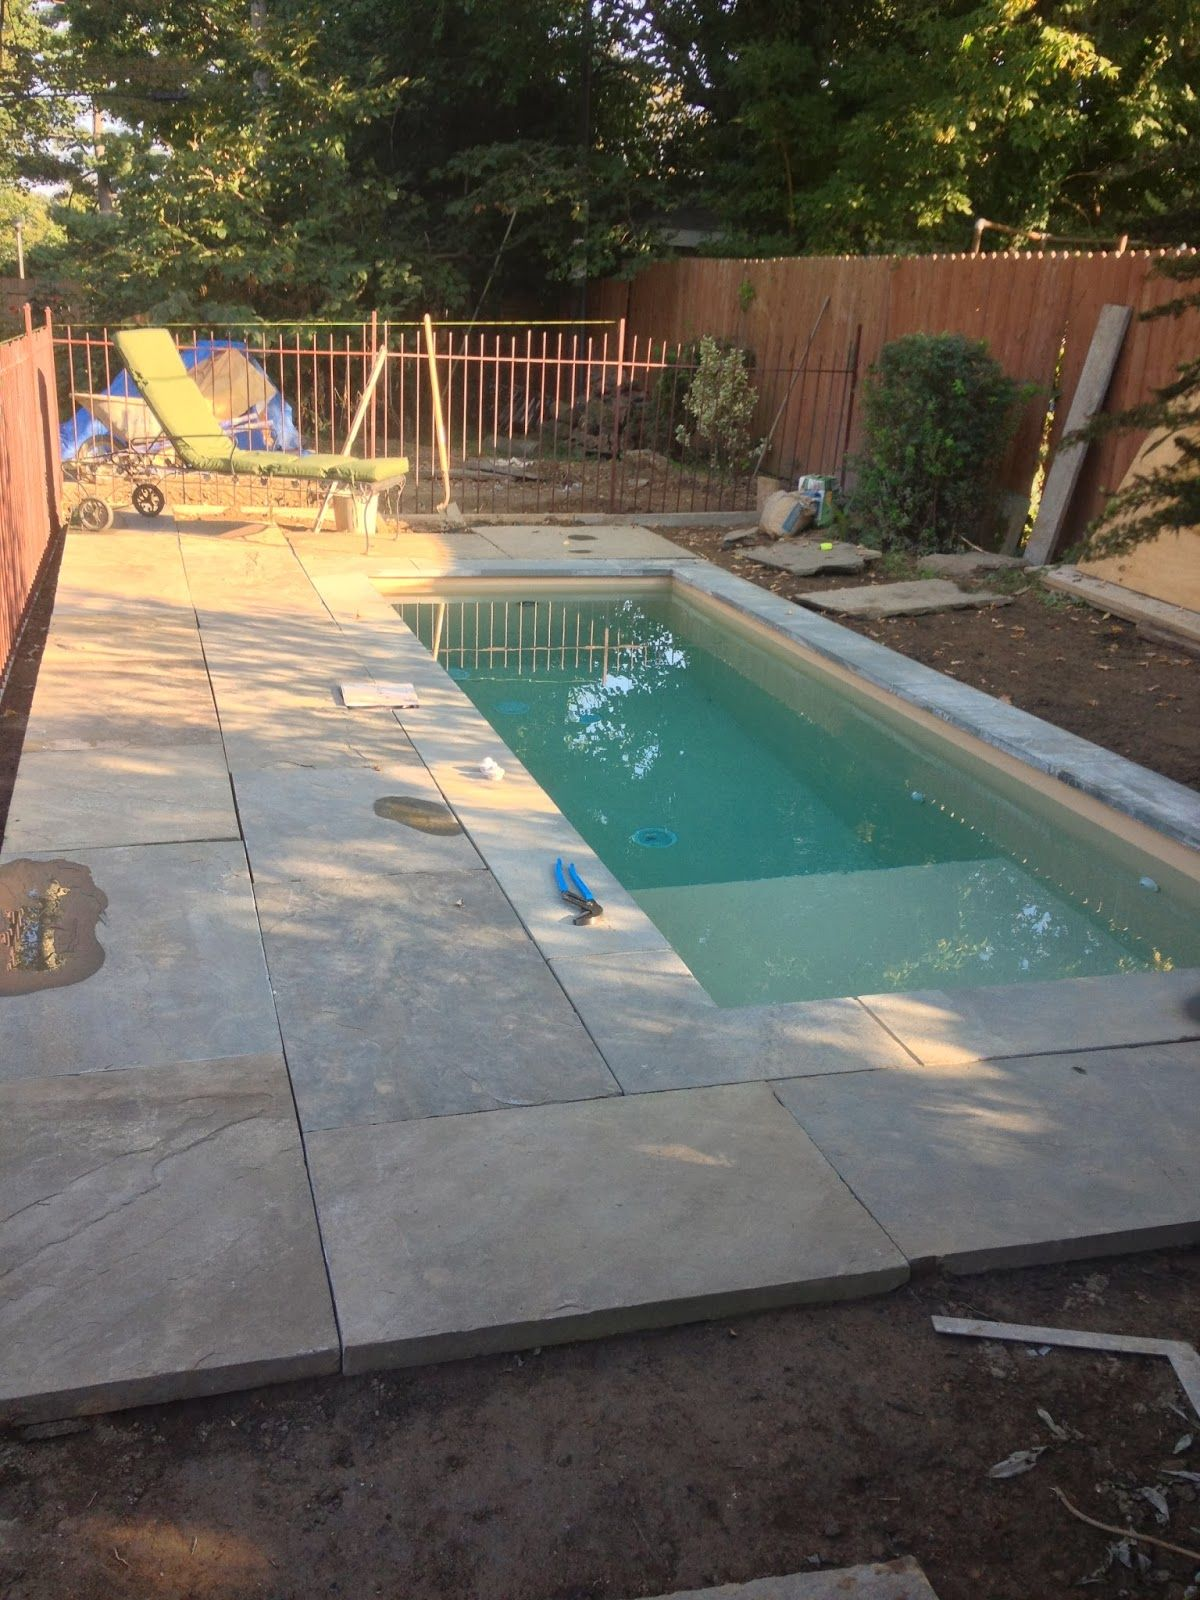 smartworkstudio: How to build a Homemade In-Ground Back ...